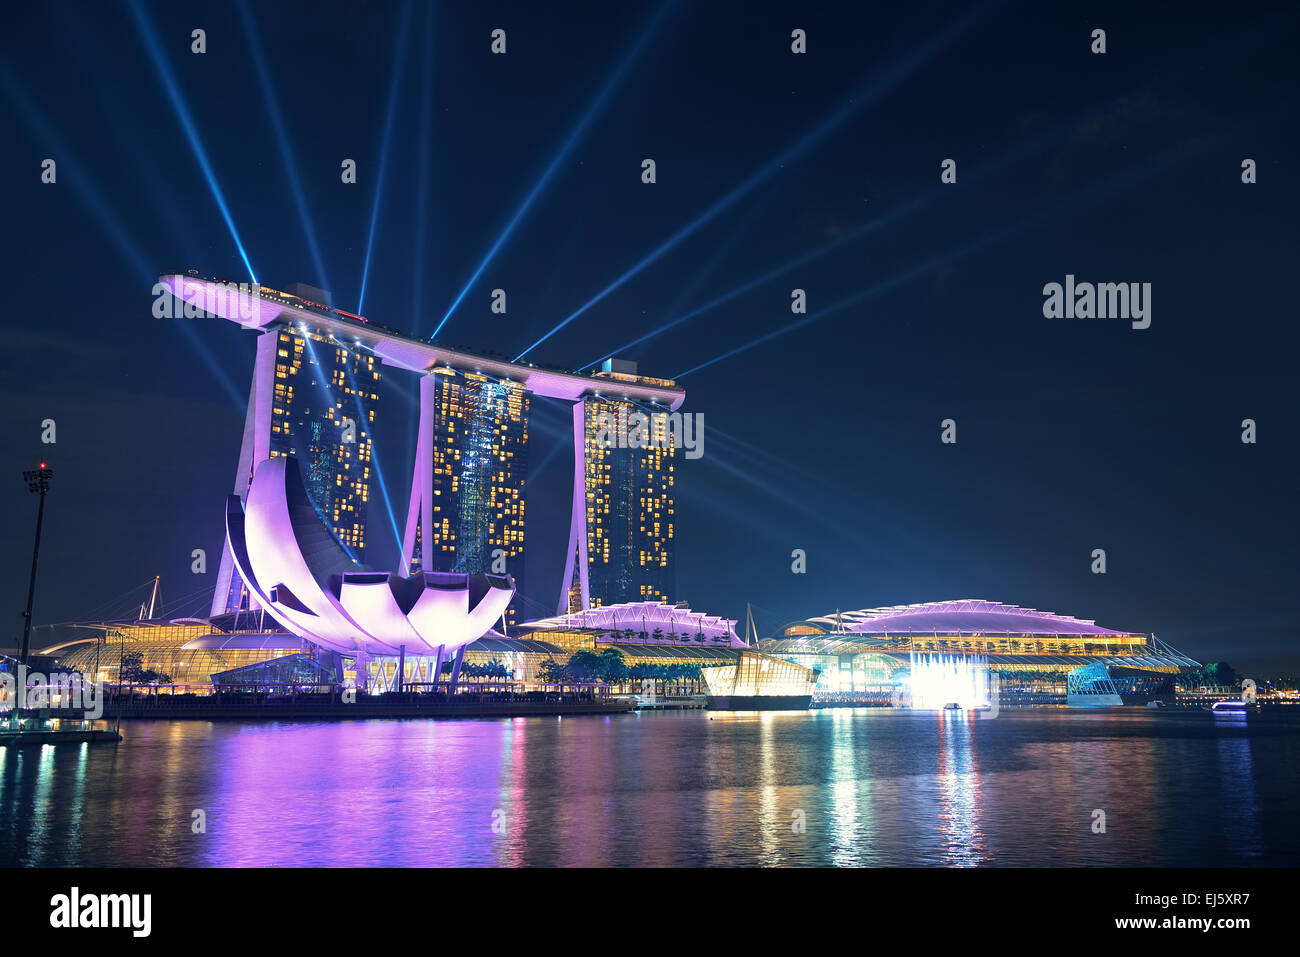 singapore apr 5 marina bay sands hotel light show at night on